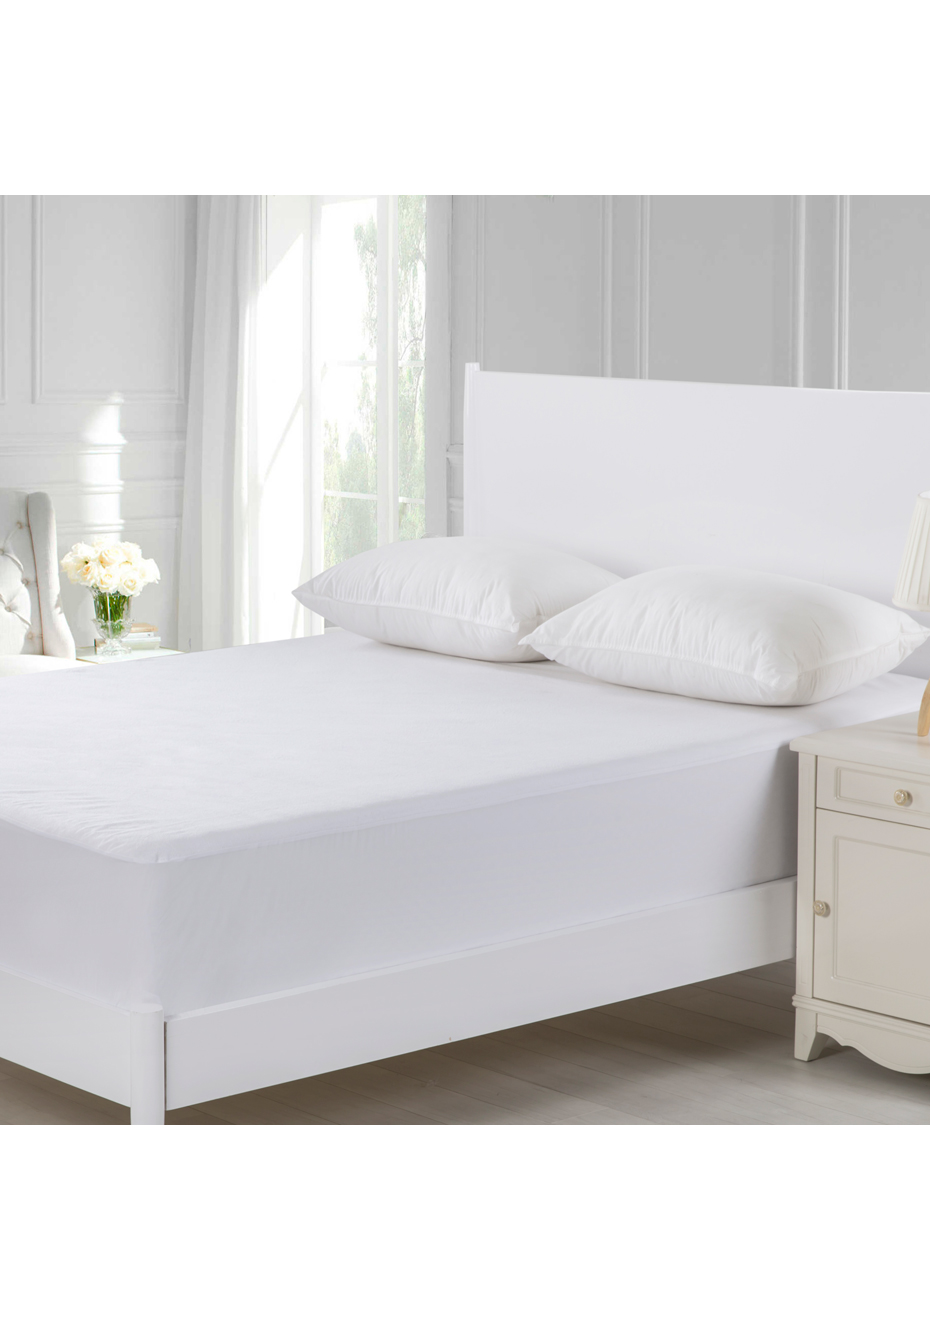 Machine Washable Terry Waterproof FULLY FITTED Mattress Protector DOUBLE